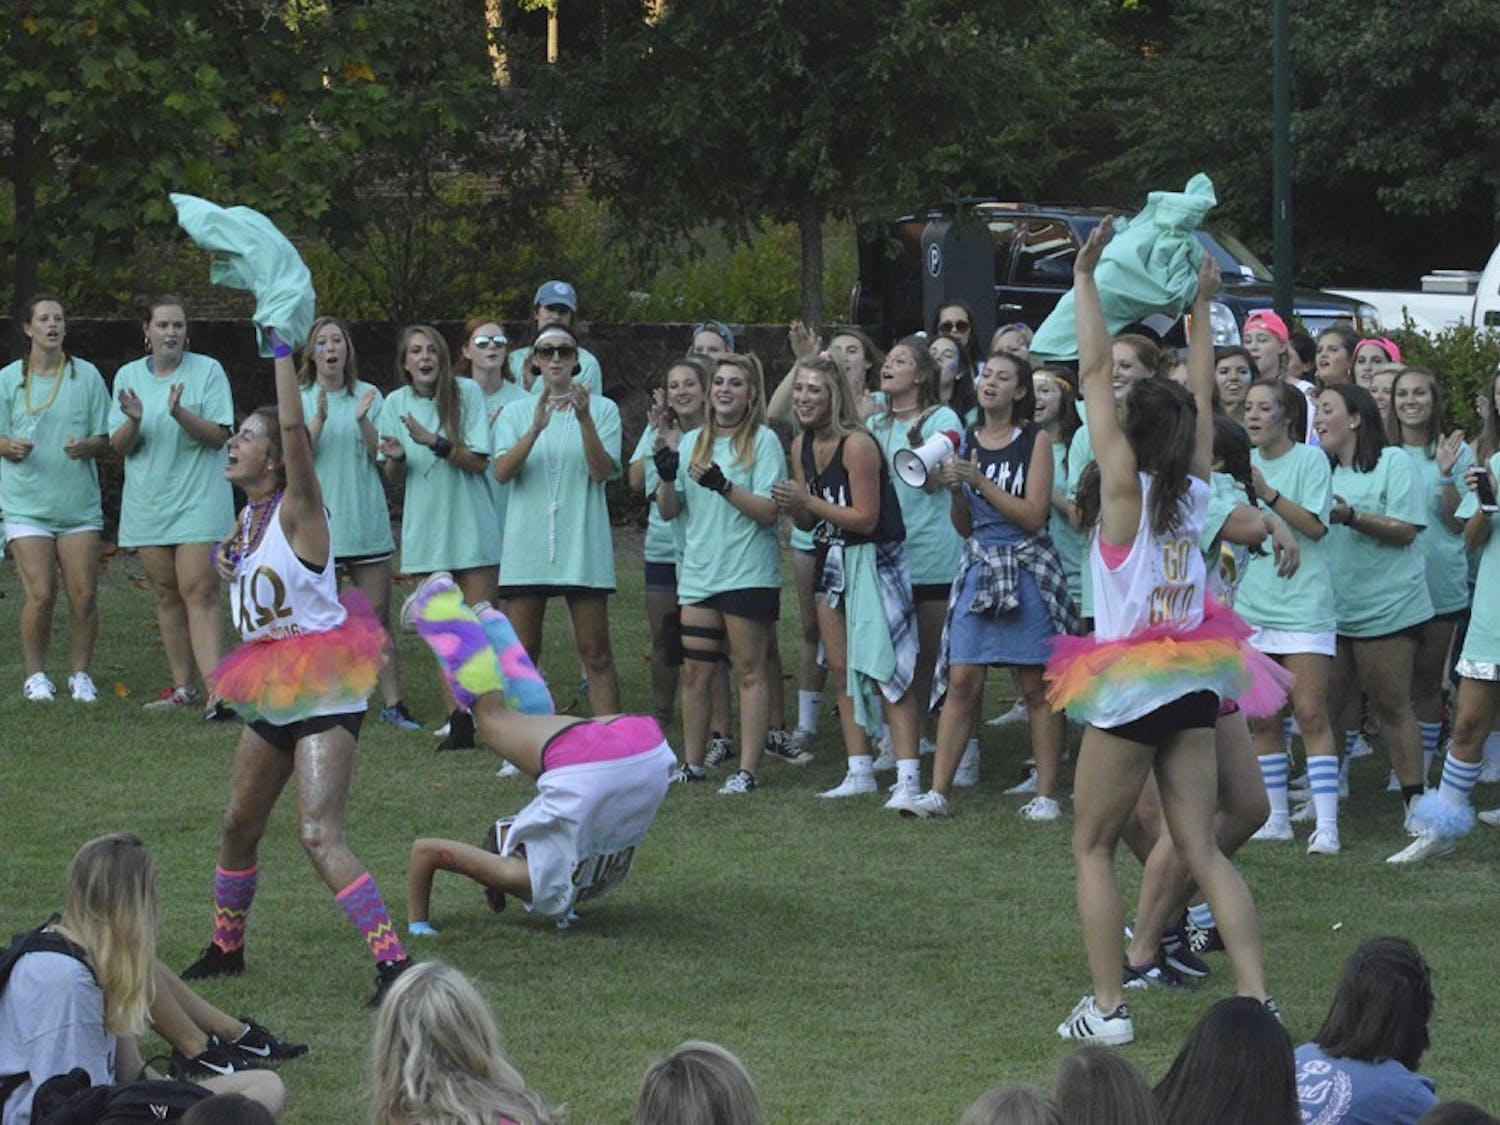 Bid Day was a huge success for all the sororities at UNC Wednesday evening.  After rushees gathered in the Bell Tower Amphitheatre, Gamma Chis revealed their sorority affiliations before the girls read their bids.